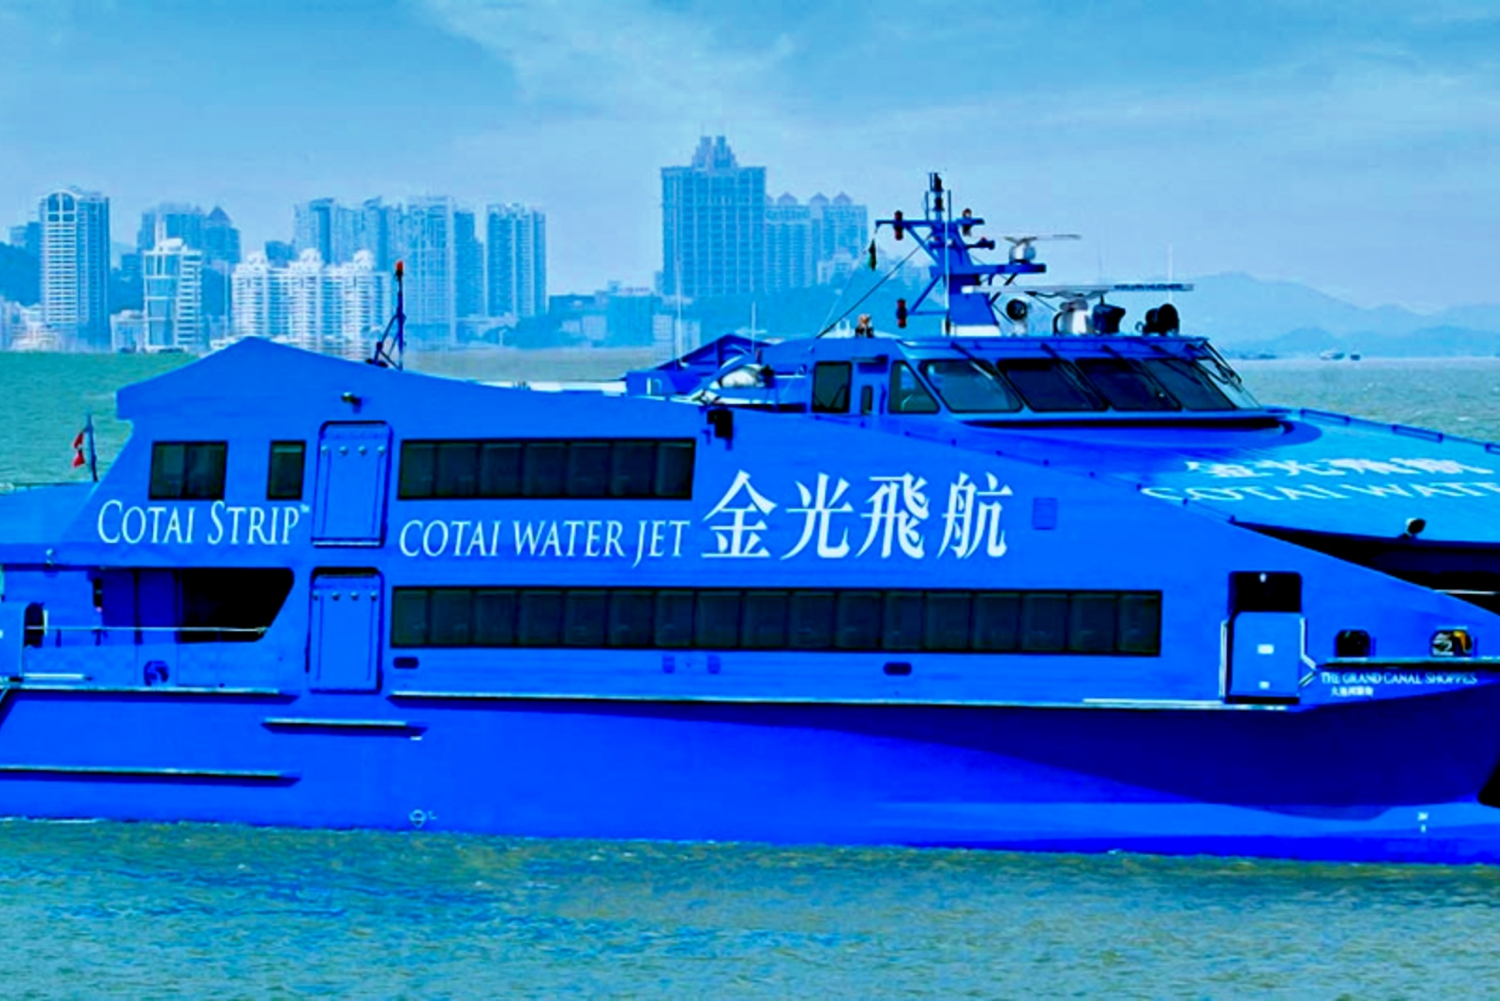 From Hong Kong to Macau Taipa: Cotai Water Jet Ticket